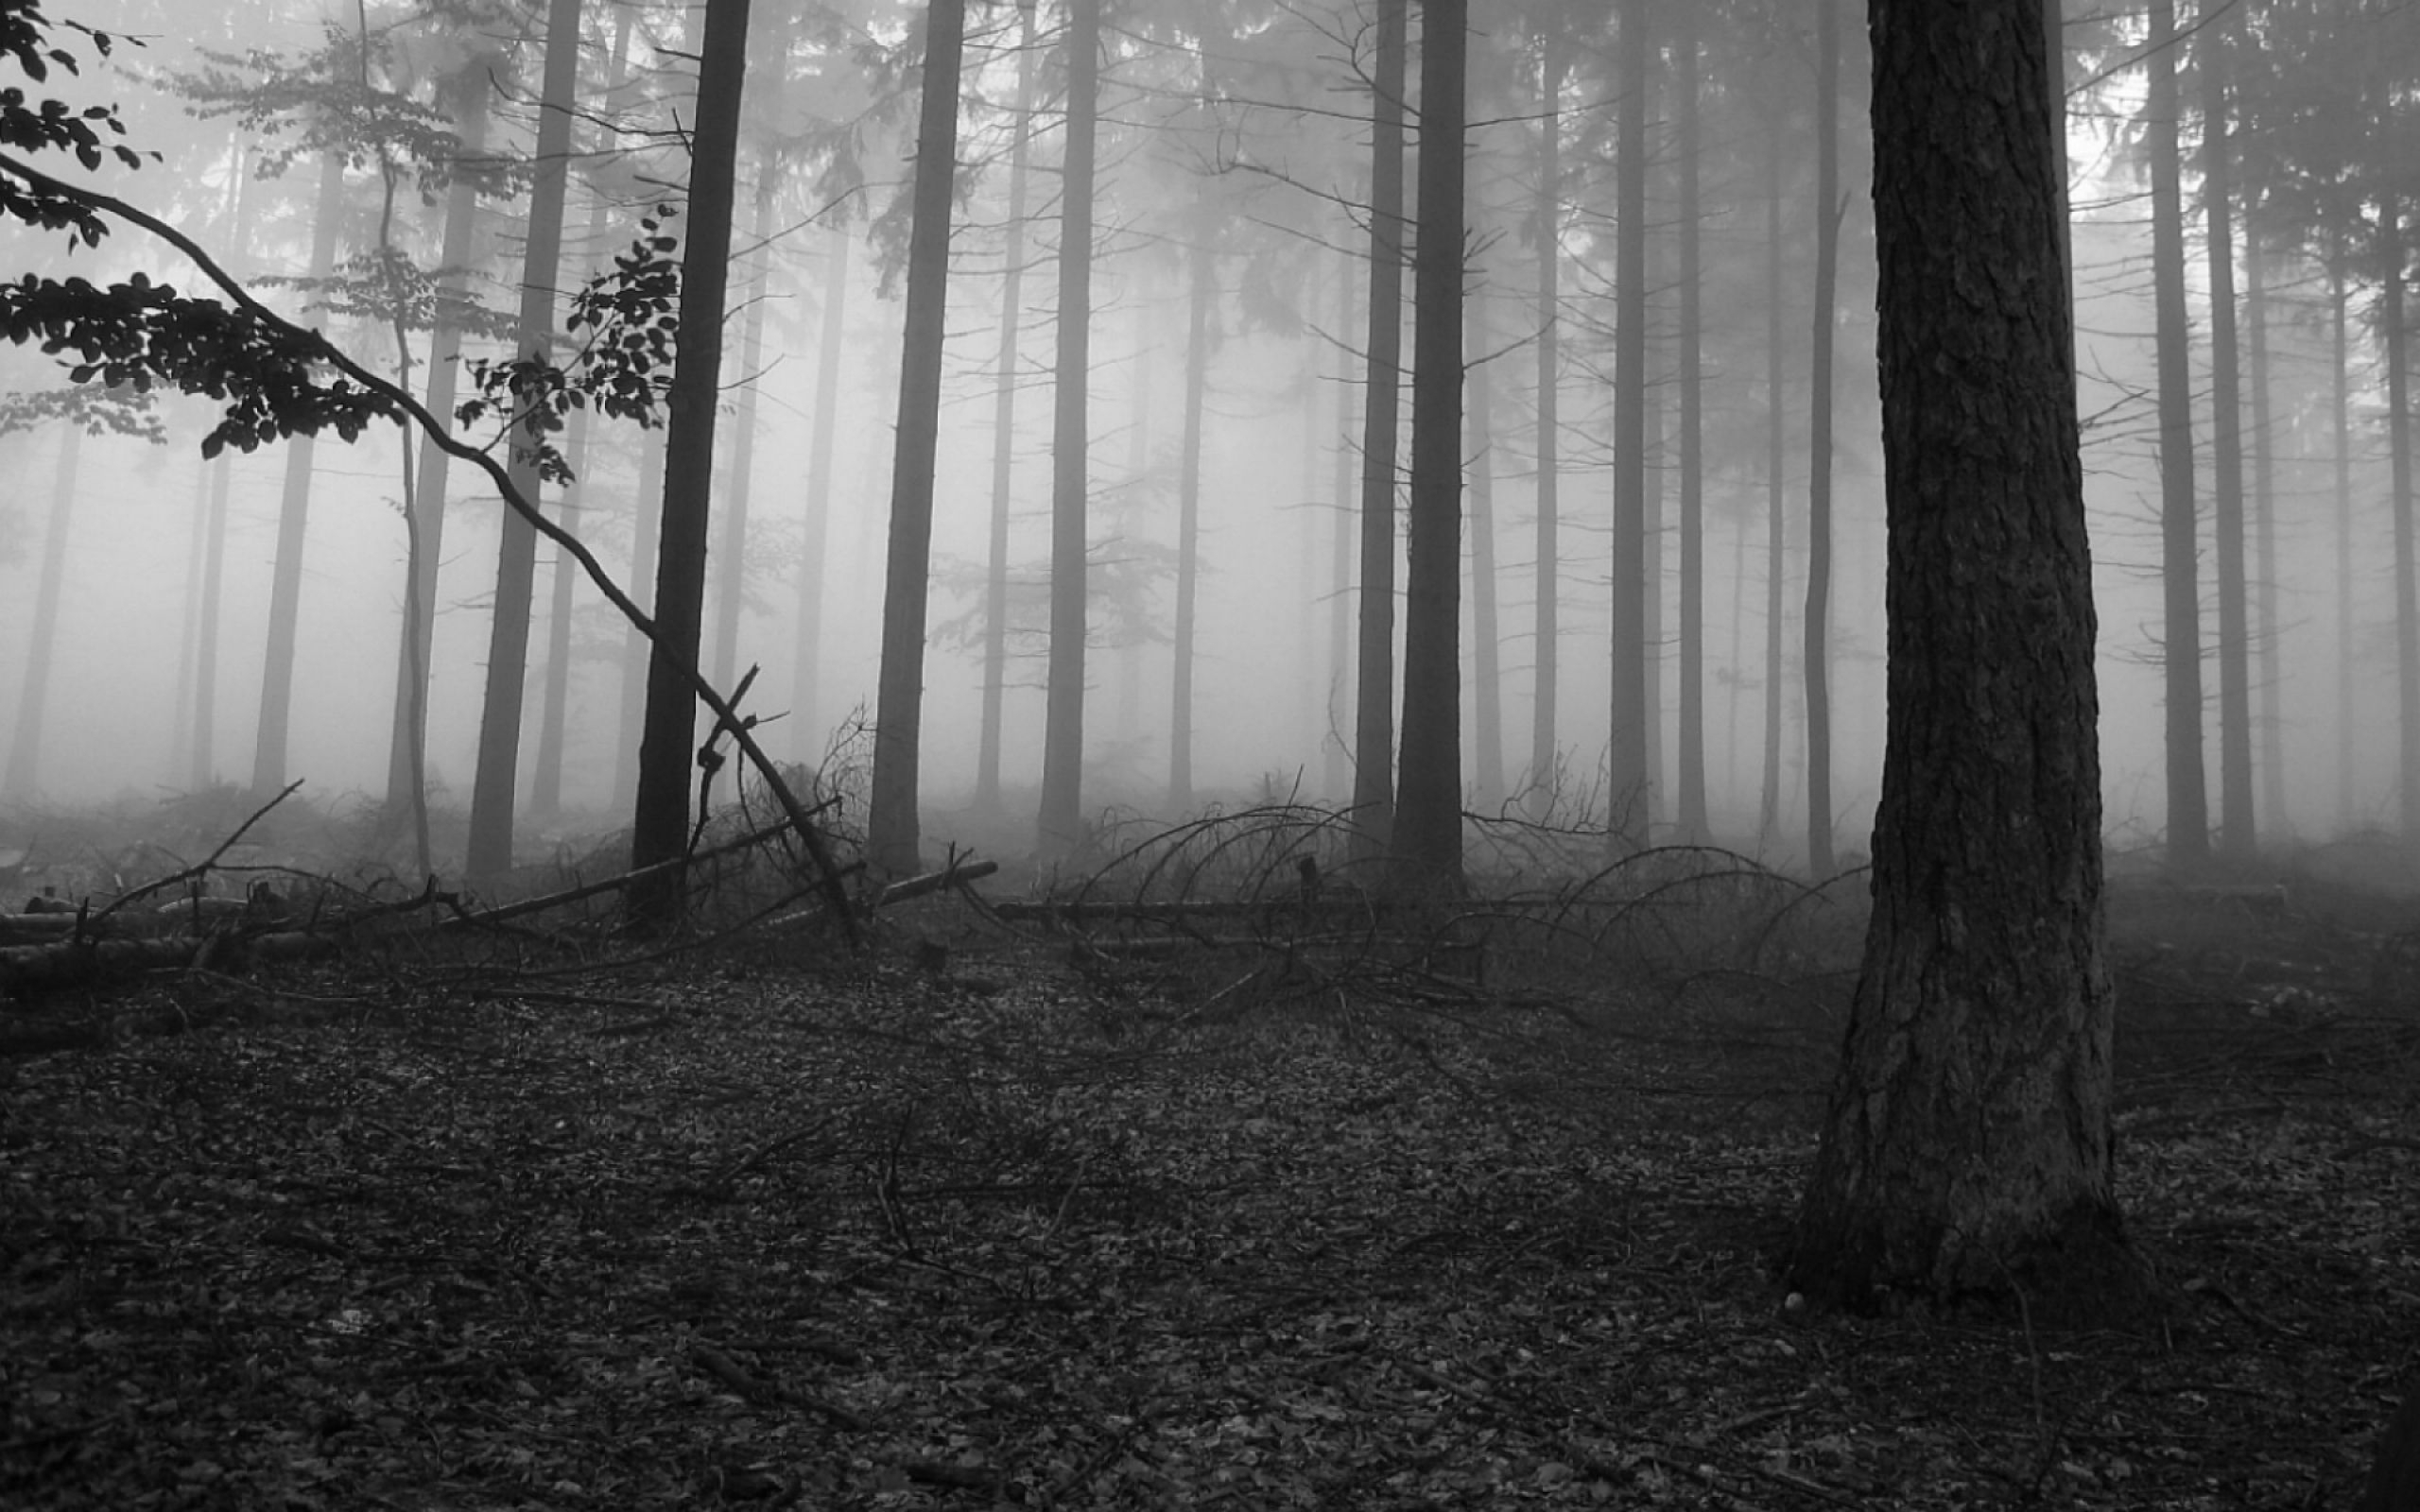 forest wallpaper black and white - wallpaper. | nof - egd reference